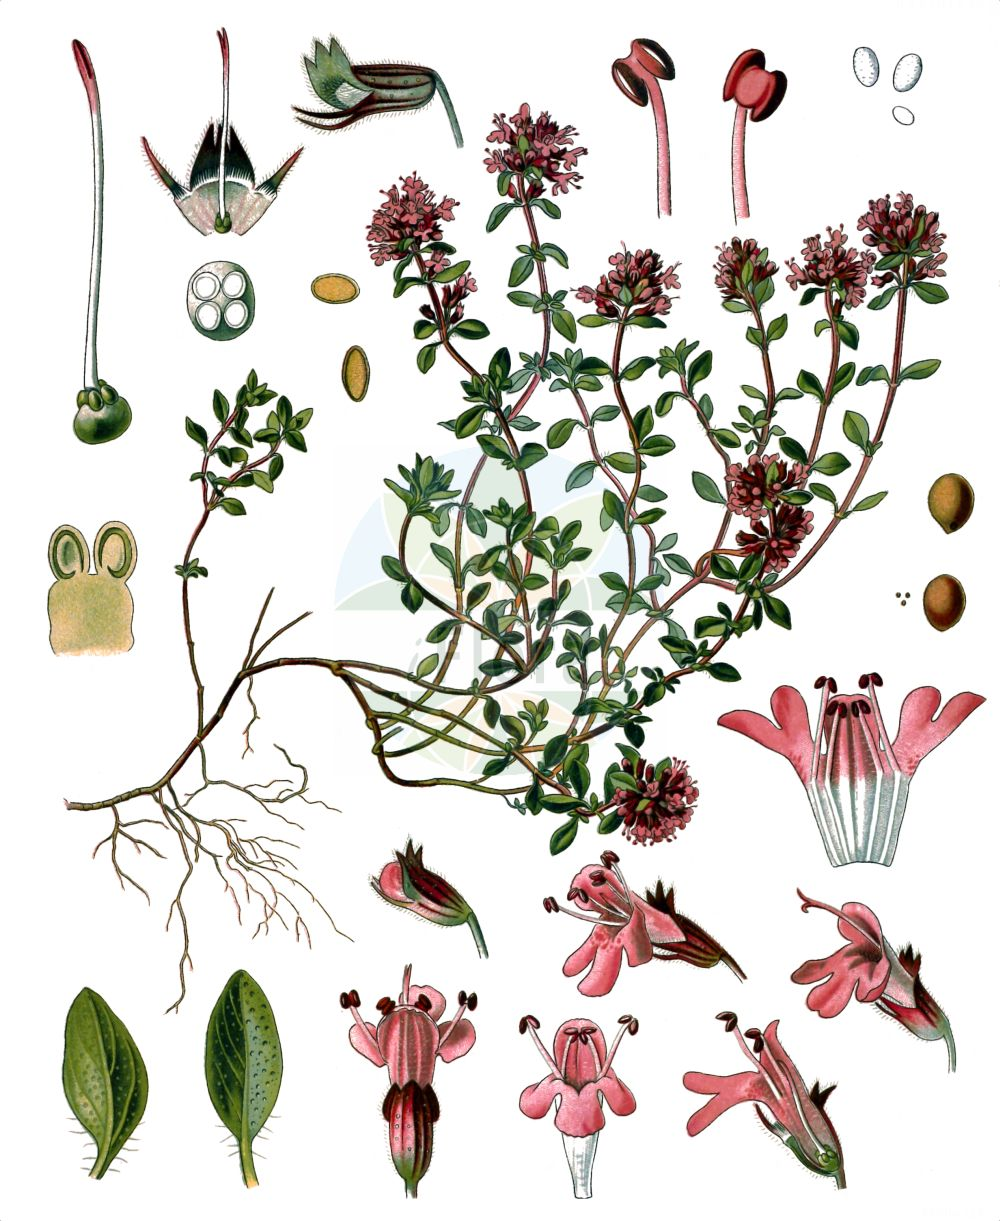 Historische Abbildung von Thymus serpyllum (Gewoehnlicher Sand-Thymian - Breckland Thyme). Das Bild zeigt Blatt, Bluete, Frucht und Same. ---- Historical Drawing of Thymus serpyllum (Gewoehnlicher Sand-Thymian - Breckland Thyme).The image is showing leaf, flower, fruit and seed.(Thymus serpyllum,Gewoehnlicher Sand-Thymian,Breckland Thyme,Origanum serpyllum,Serpyllum vulgare,Thymus serpyllum,Gewoehnlicher Sand-Thymian,Innsbrucker Quendel,Innsbrucker Thymian,Sand-Quendel,Sand-Thymian,Tiroler Quendel,Breckland Thyme,Breckland Garden,Creeping Thyme,Mother-of-Thyme,Thymus,Thymian,Thyme,Lamiaceae,Lippenbluetengewaechse,Lippenbluetler,Nettle family,Blatt,Bluete,Frucht,Same,leaf,flower,fruit,seed,Koehler (1883-1898))